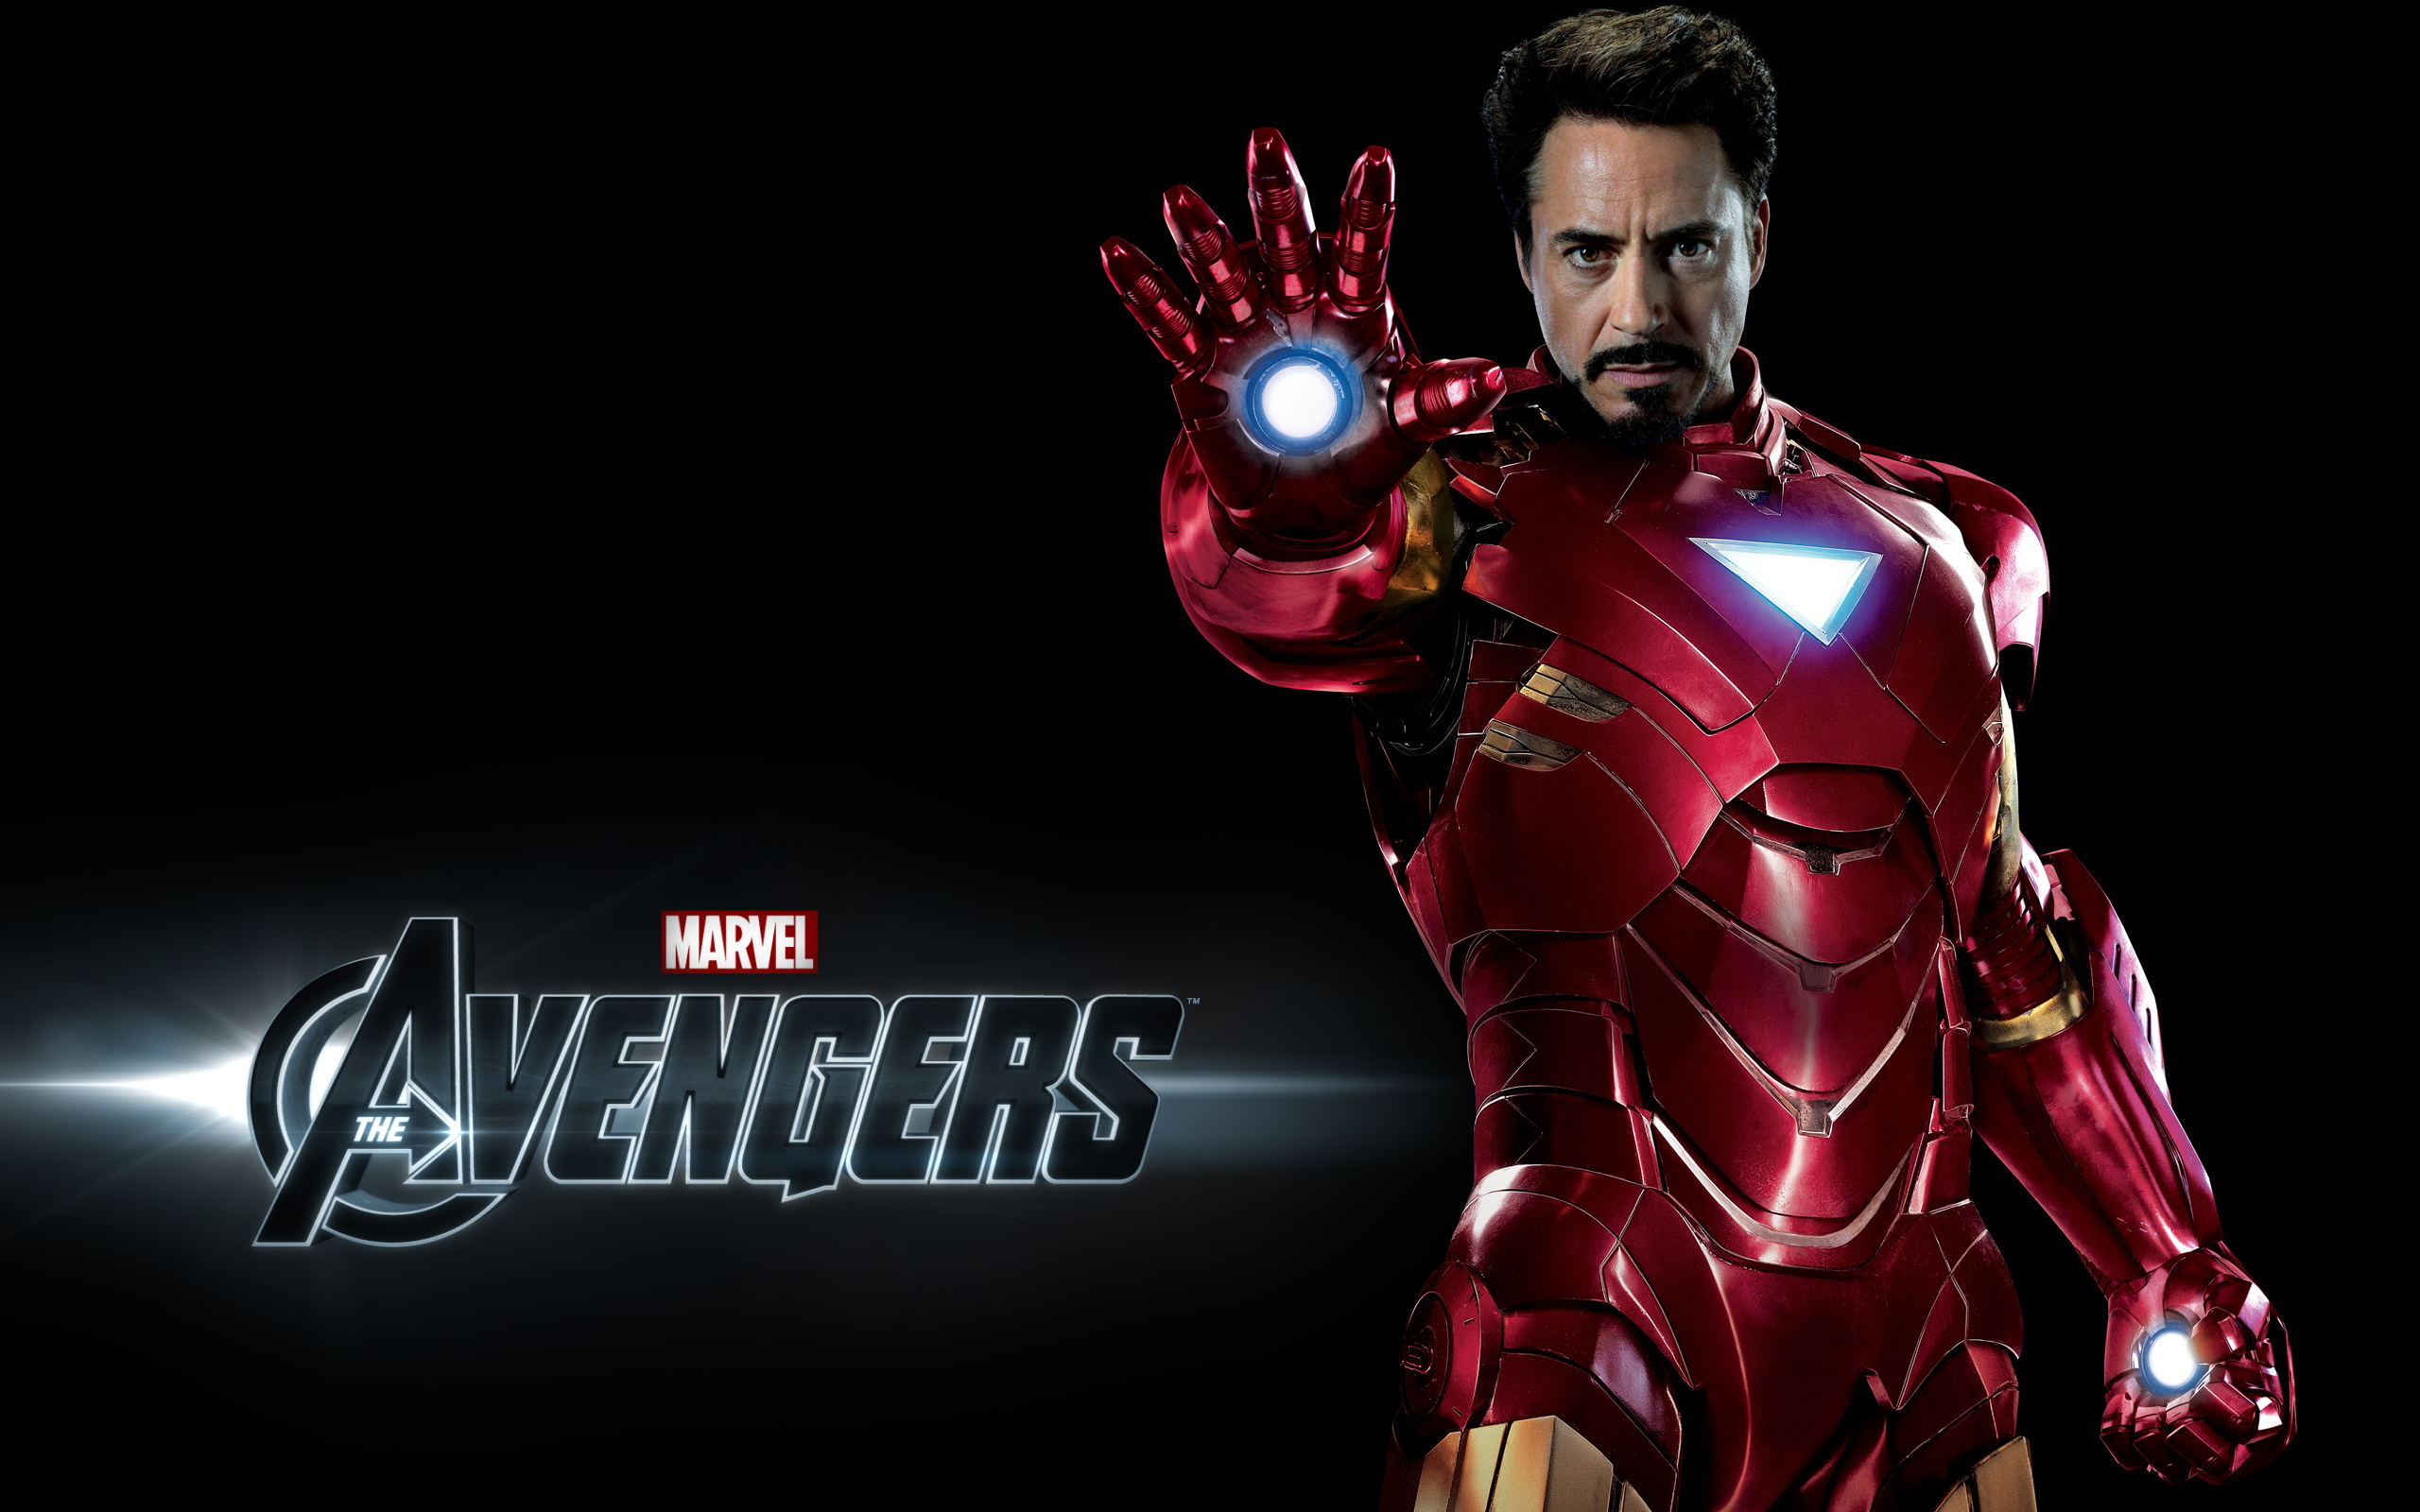 iron man the movie images iron man hd wallpaper and background